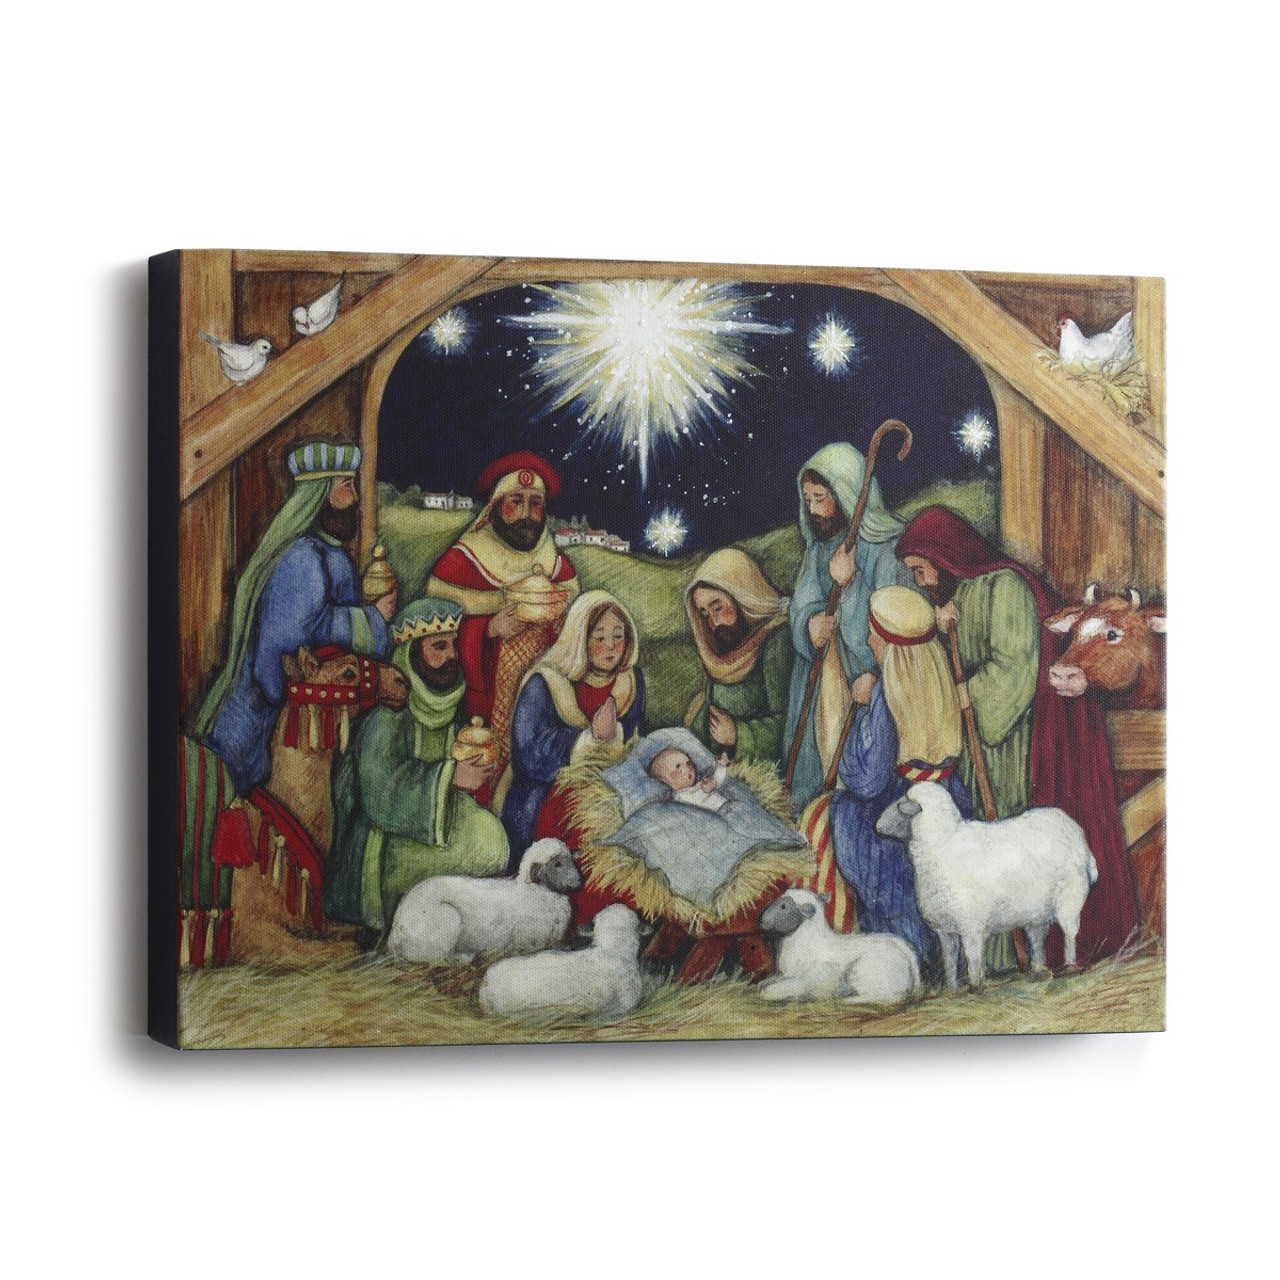 Holy Night Print | Nativity Scene | Canvas | Framed 12 "|1280|1280|?|61ce6ede6708ec1eb4c181fc7351ebaf|False|UNLIKELY|0.3688216507434845